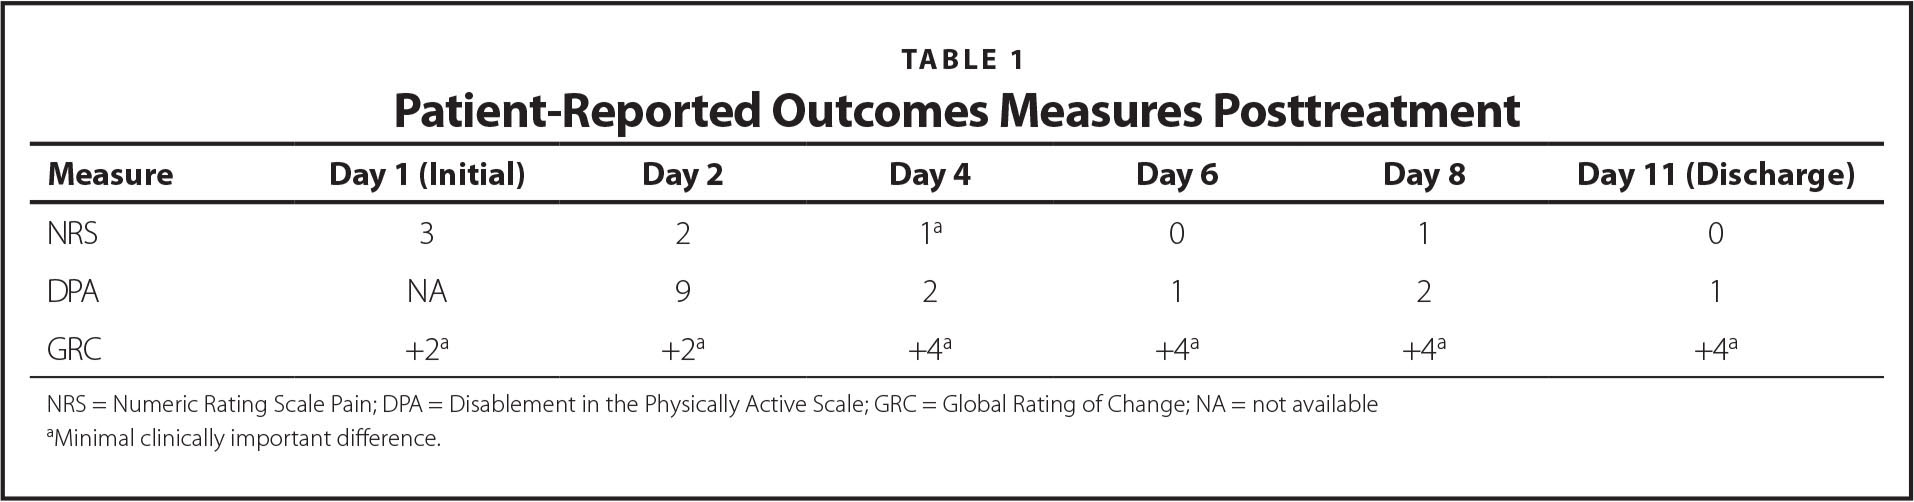 Patient-Reported Outcomes Measures Posttreatment